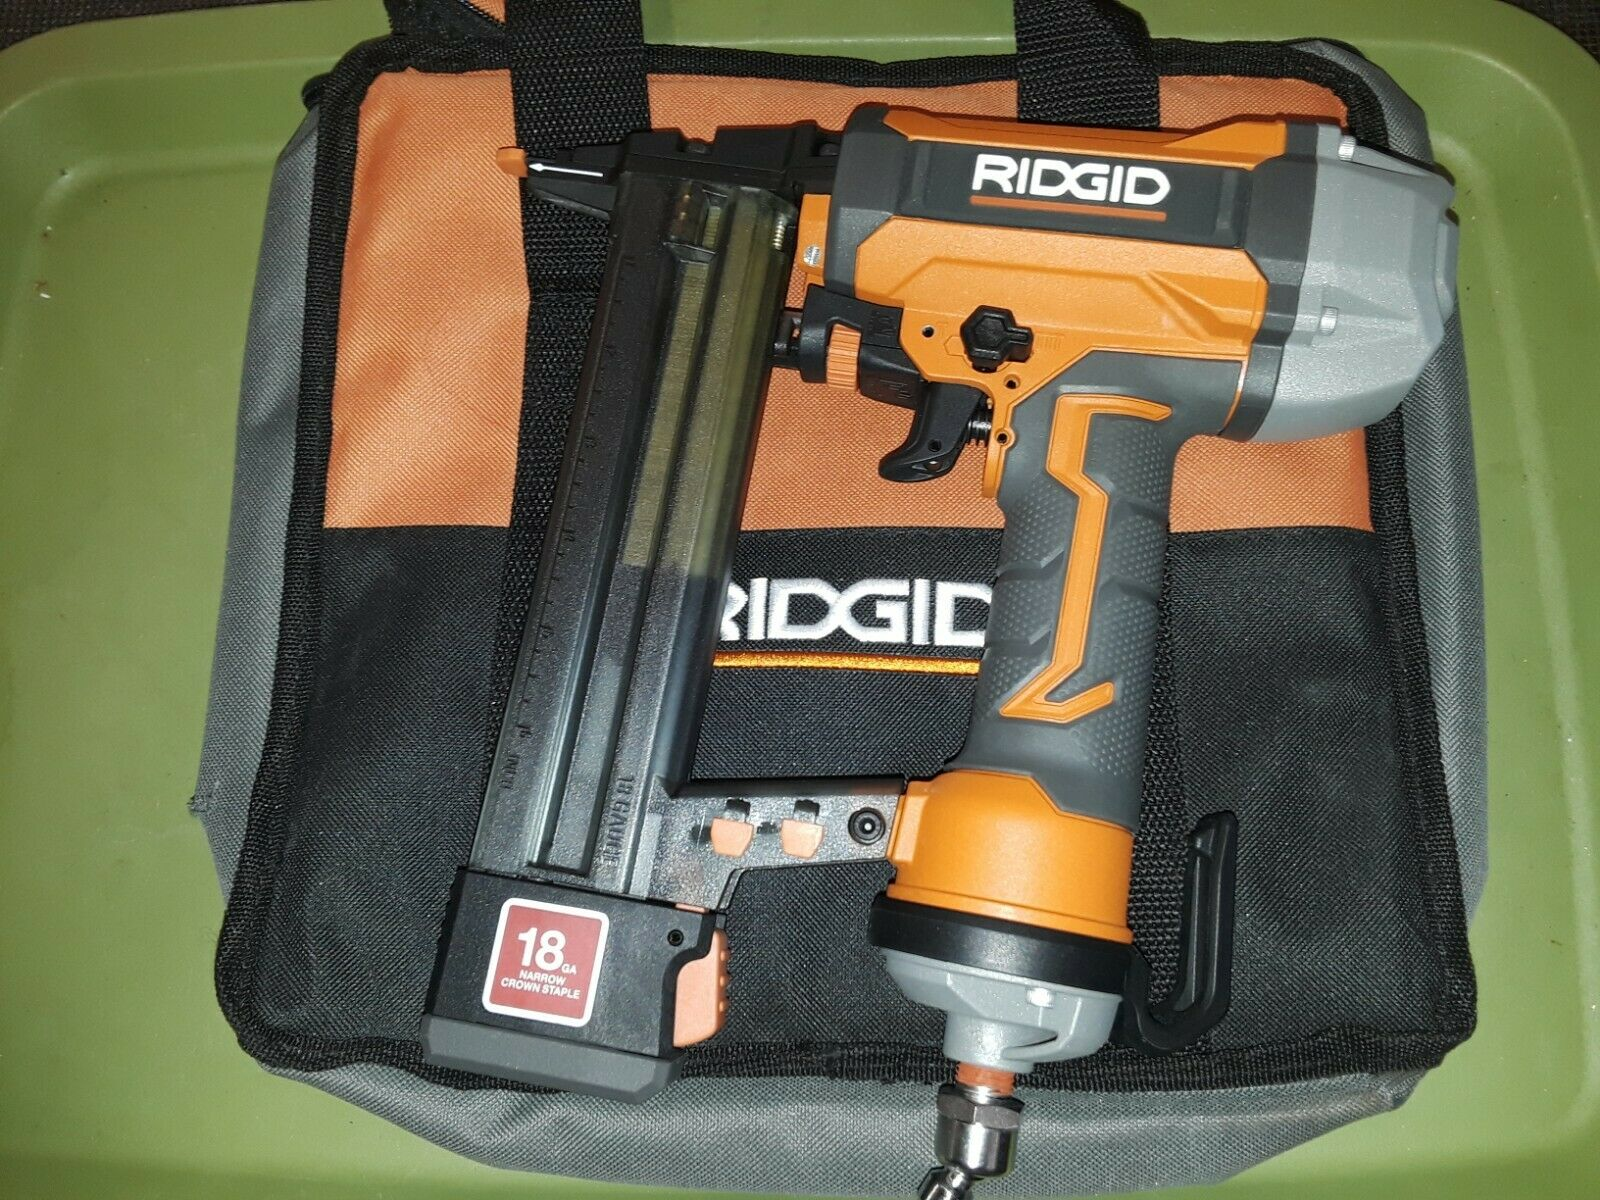 RIDGID R150FSF 18-Gauge 1.5'' Finish Stapler comes with a Bag - Dated 2018